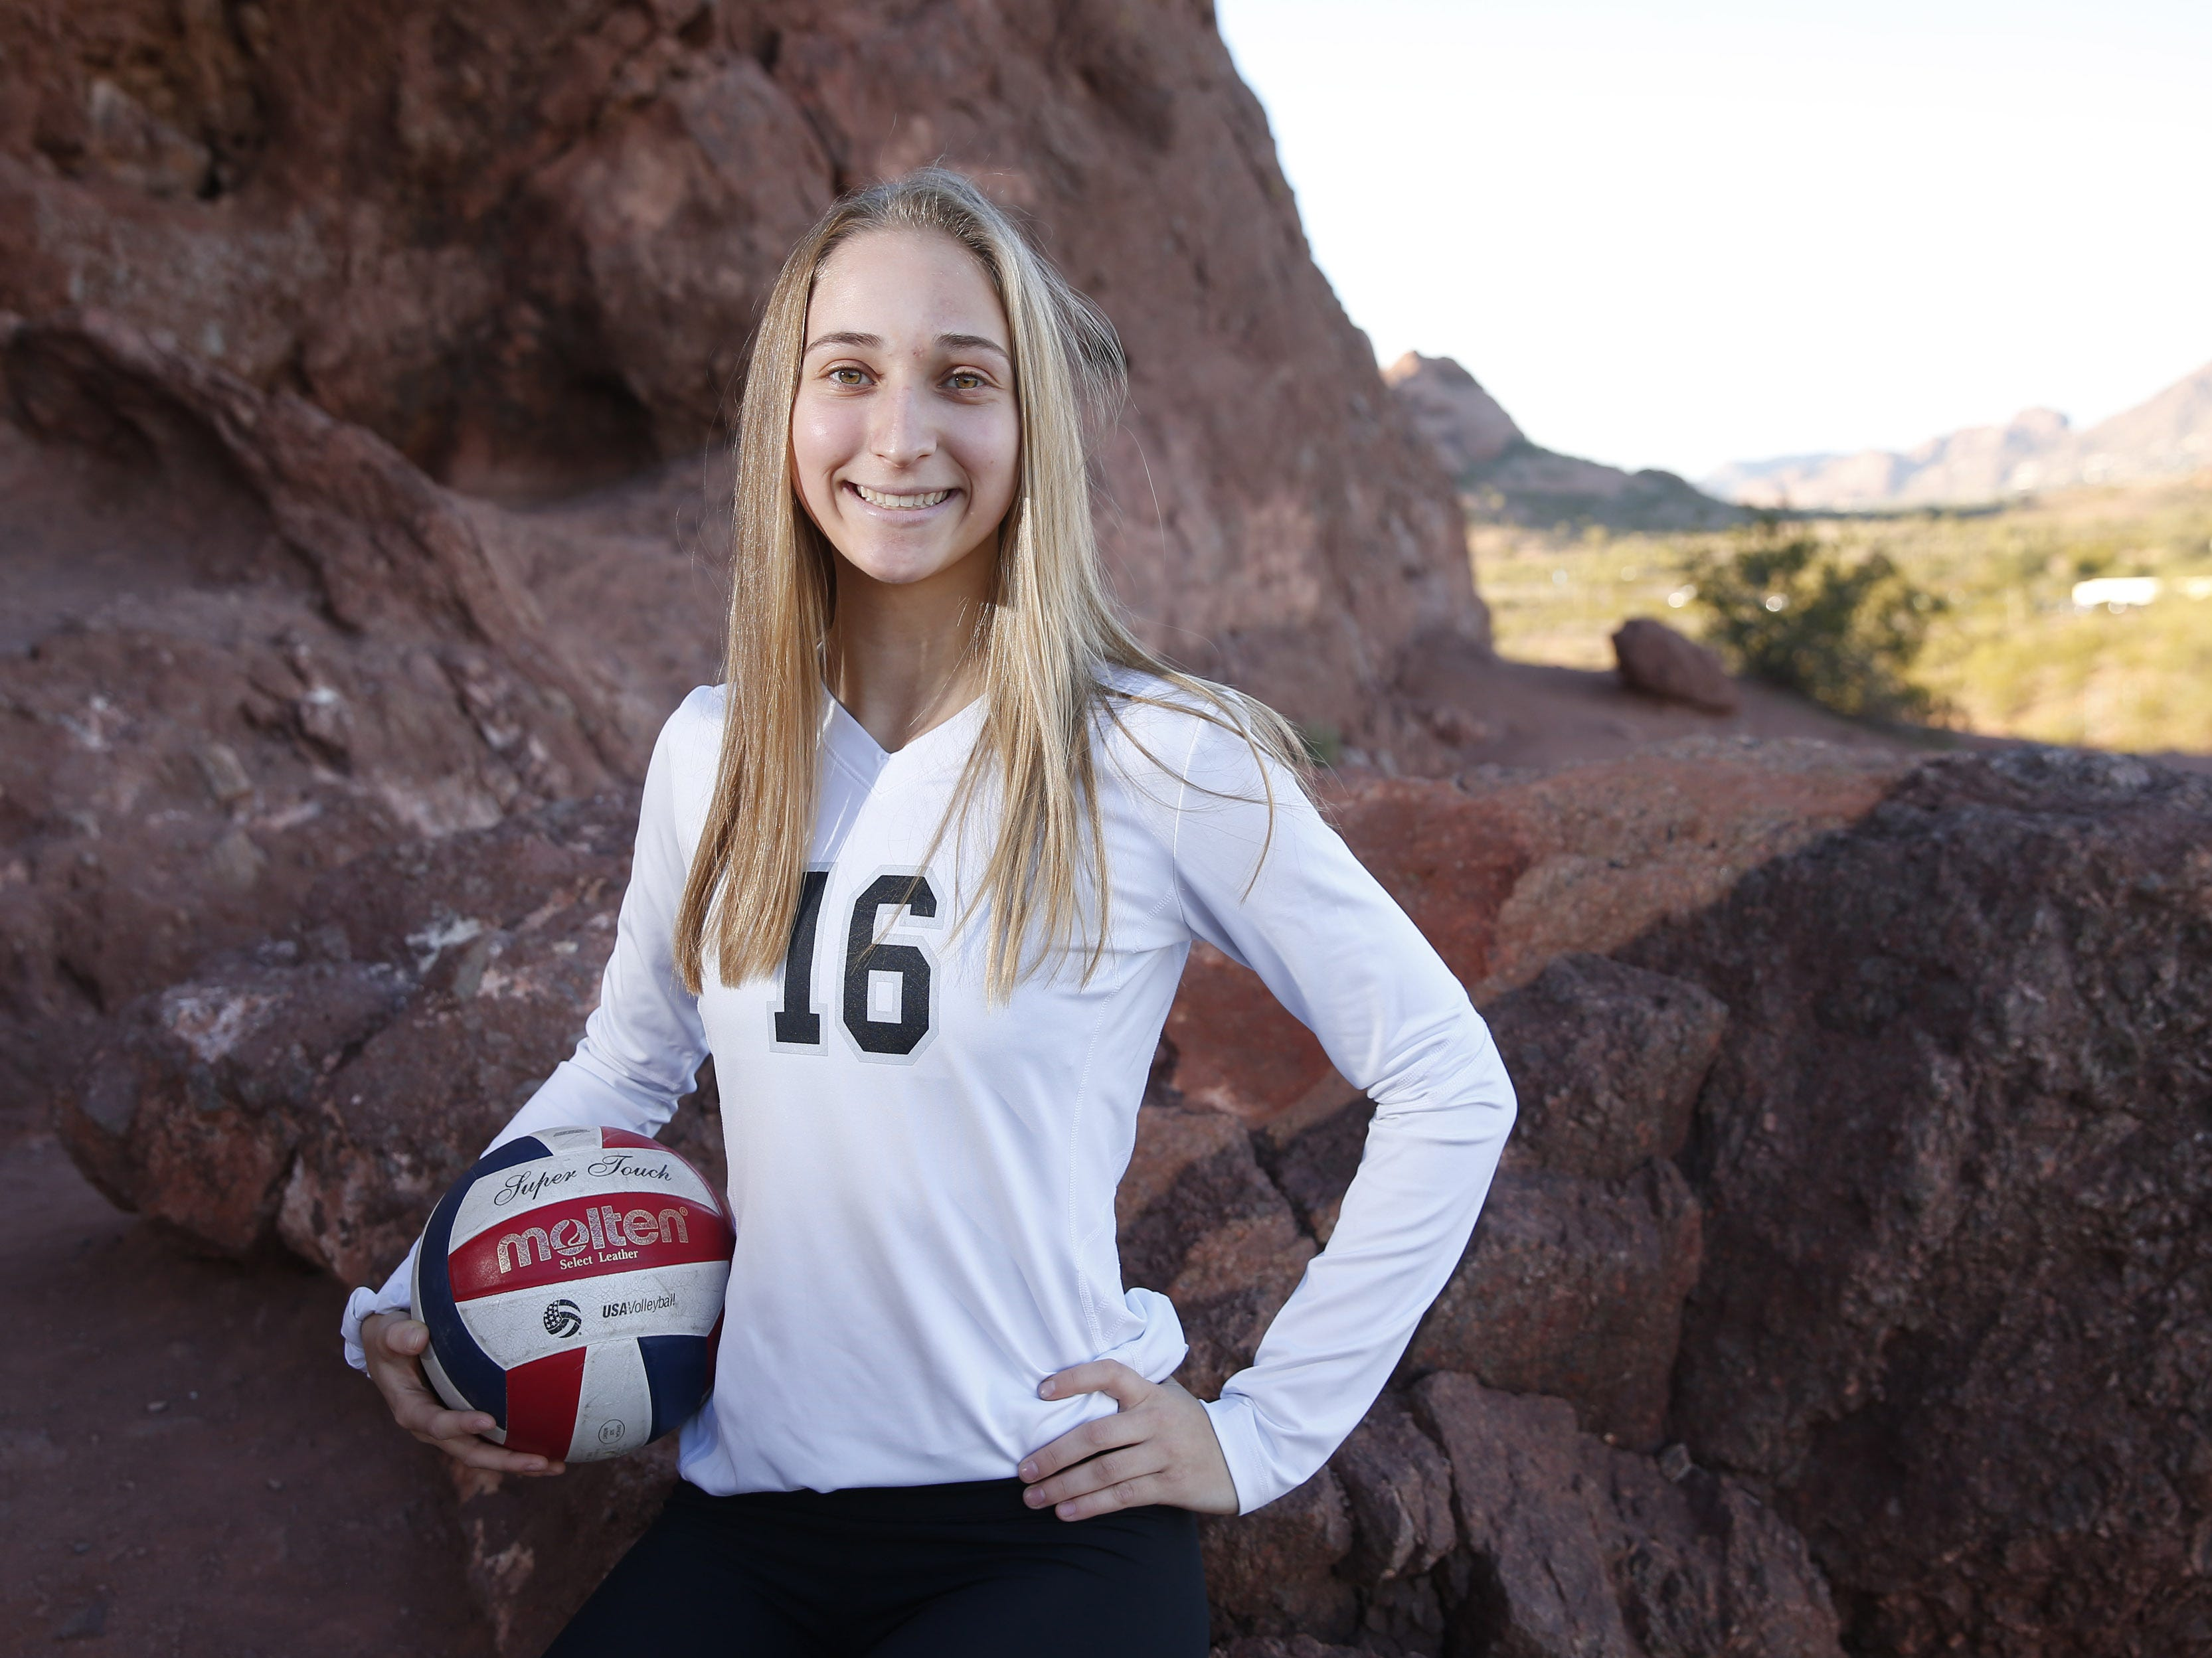 Nicole Hoff of Millennium is a finalist for the azcentral Sports Awards Girls High School Volleyball of the Year. #azcsportsawards